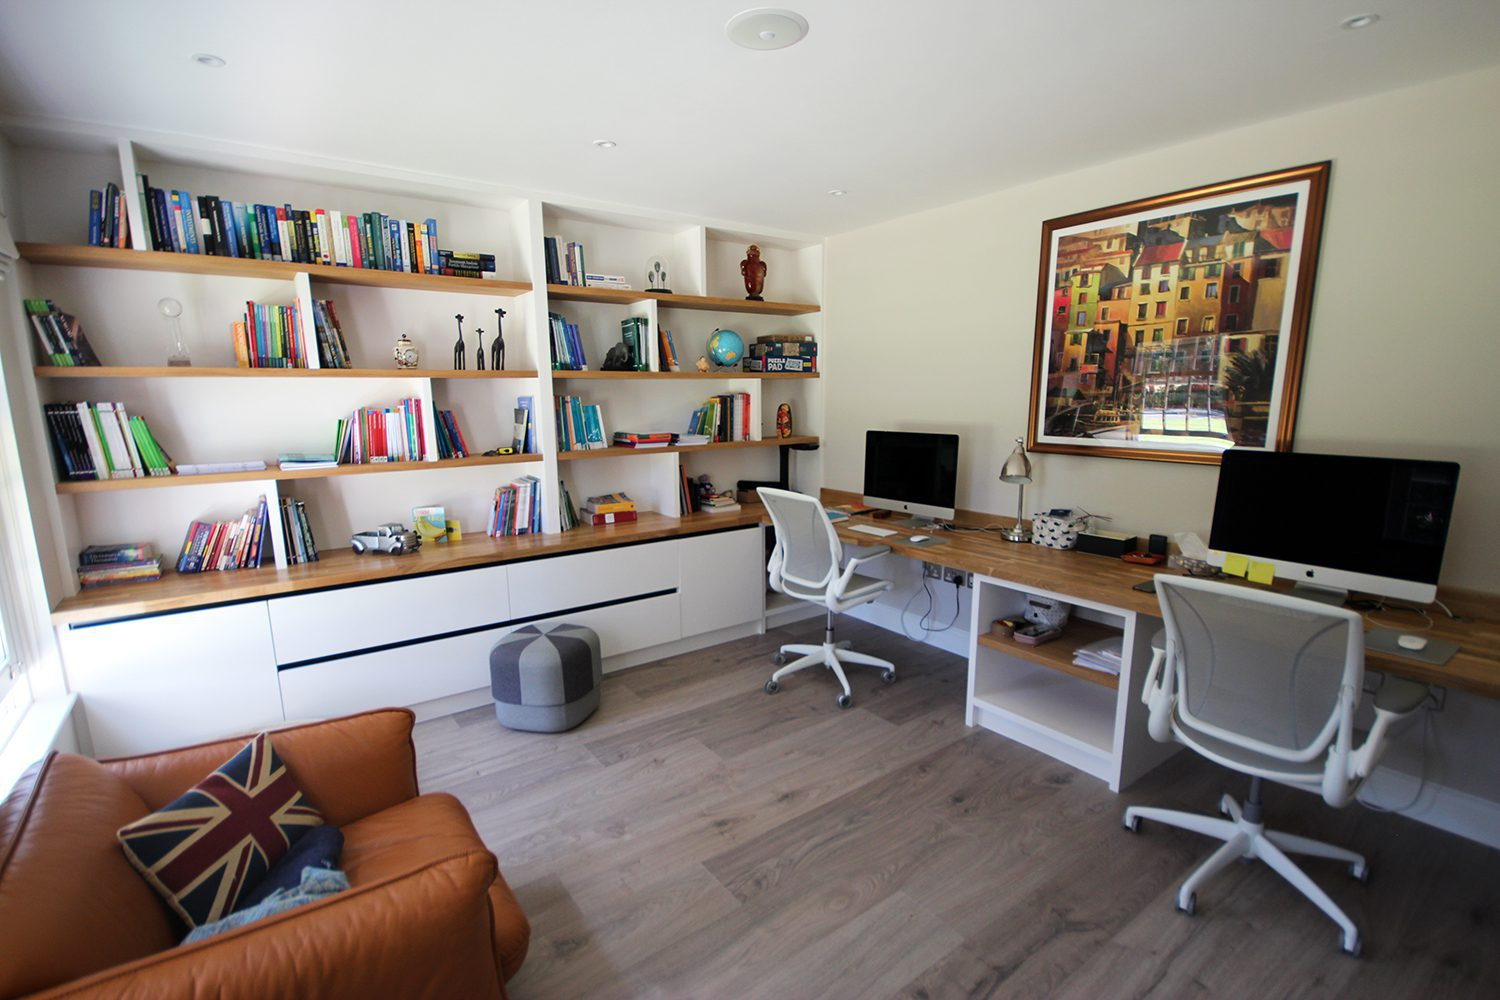 Creative home office shelving from Stone and Chrome